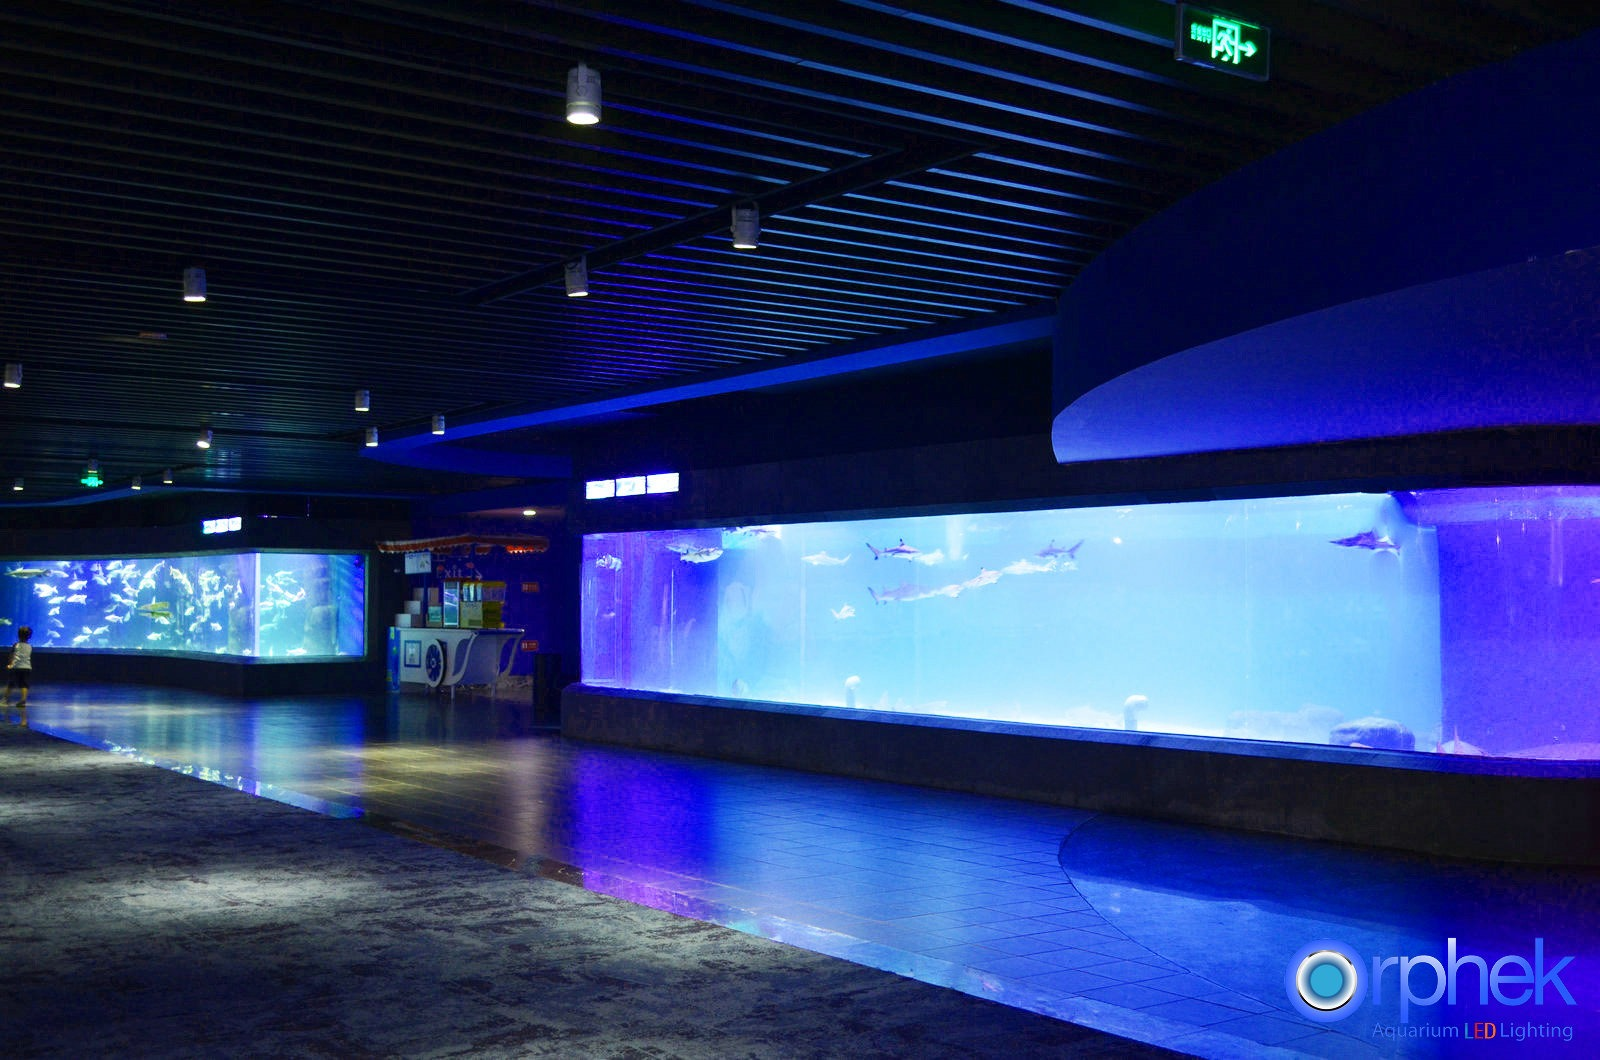 Exhibition Light D Model : One of the largest public aquarium projects in world